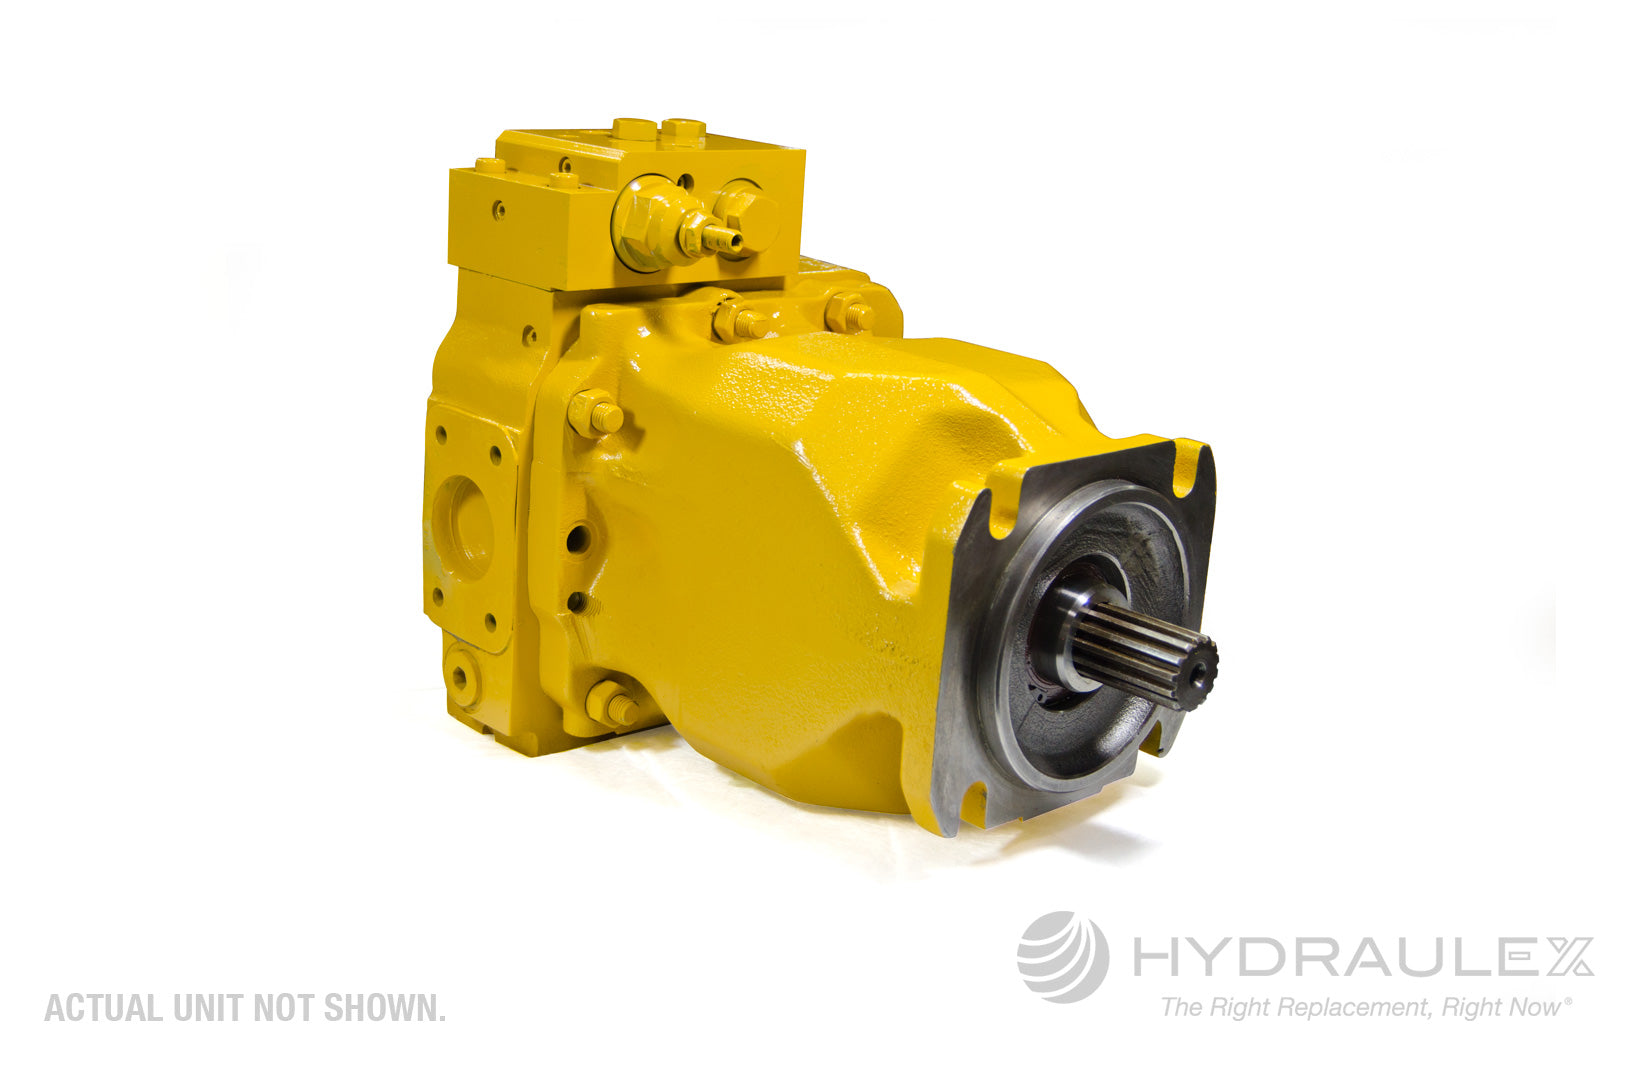 Caterpillar D6H, D6R, 970F Main Hydraulic Pump | 9T-3680